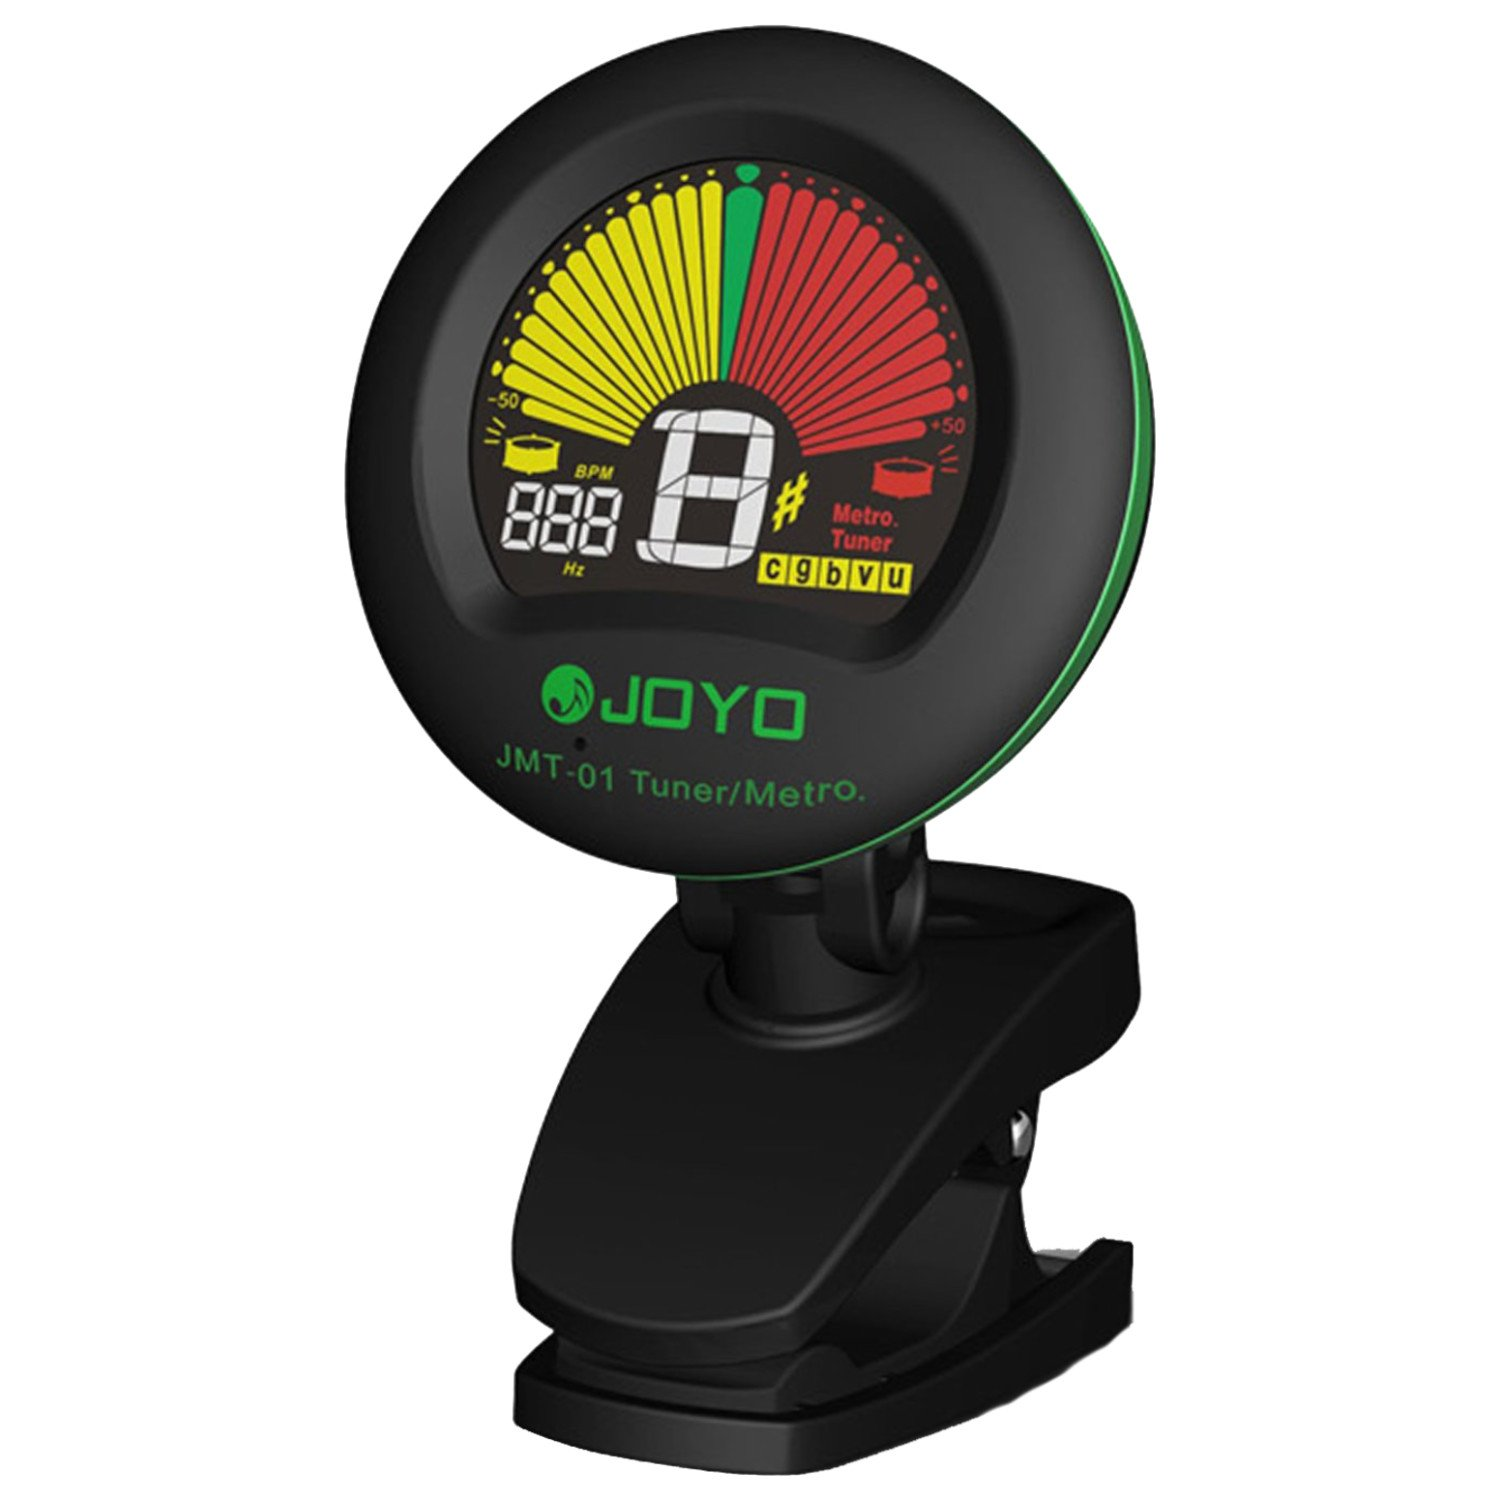 Joyo JMT-01 Clip-on Metronome Tuner for Strings instruments such as Chromatic, Guitar, Bass, Violin and Ukulele